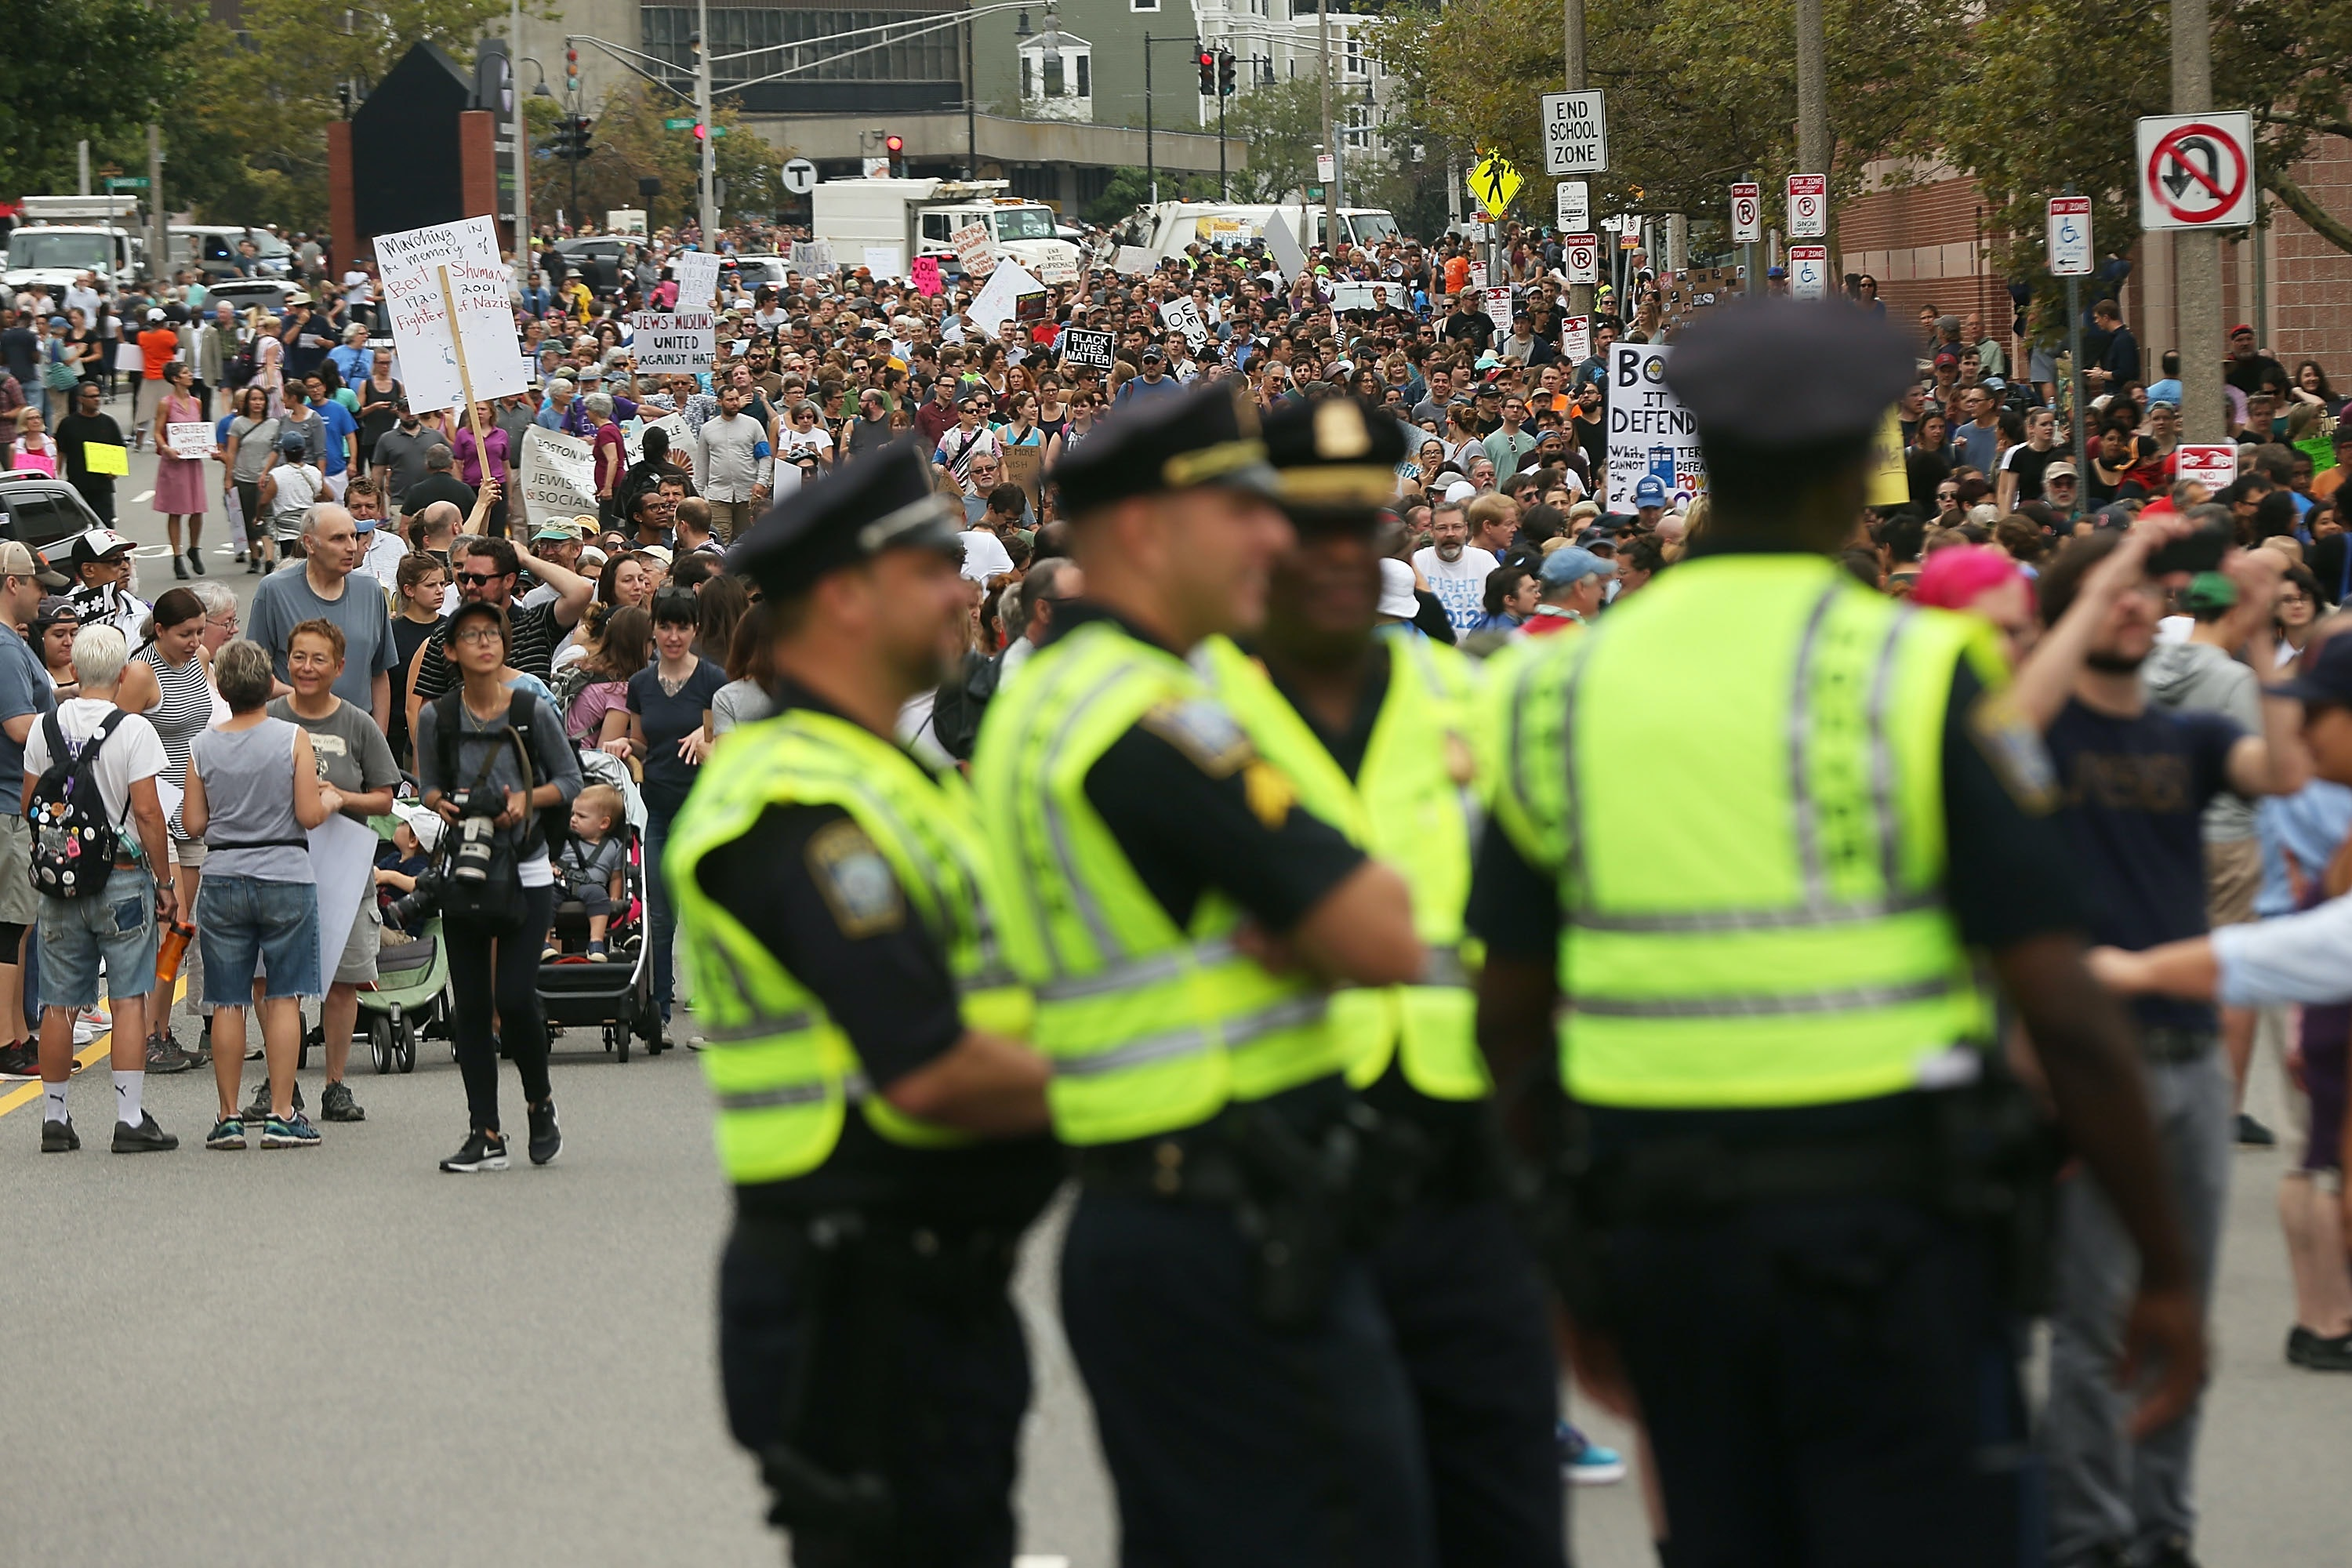 Boston 'Free Speech Rally' ends early as thousands march in counter-protest